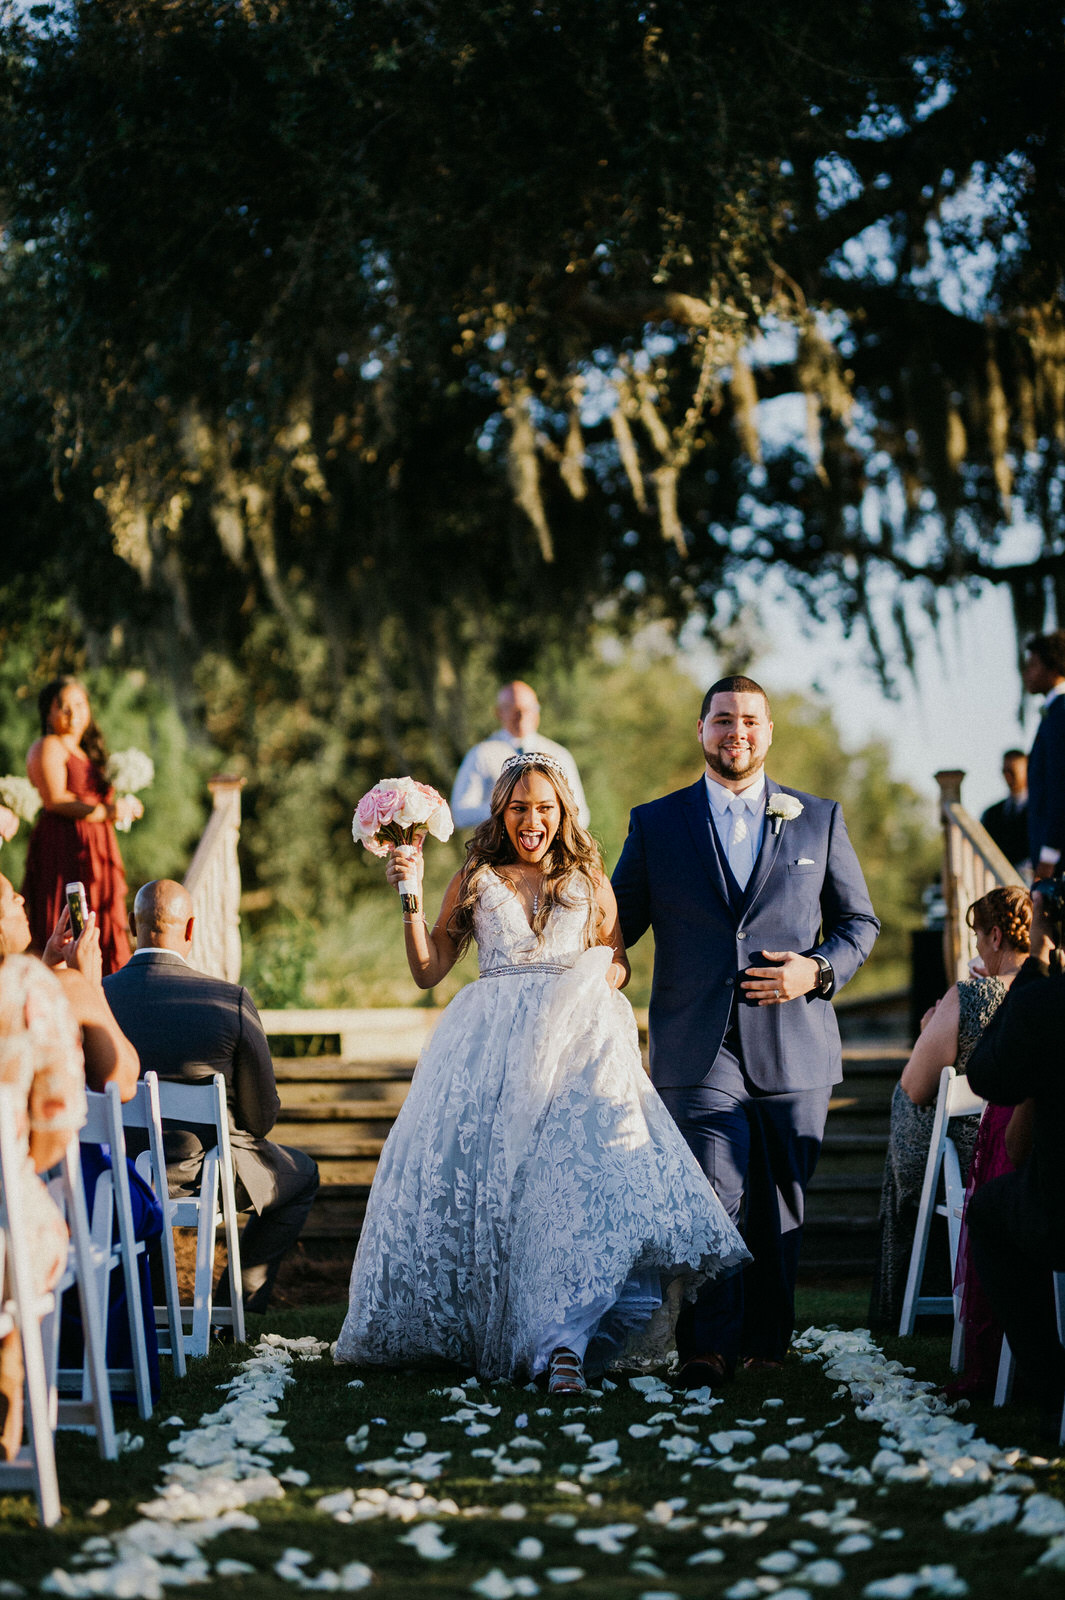 McNeile_Photography_Tampa33.jpg